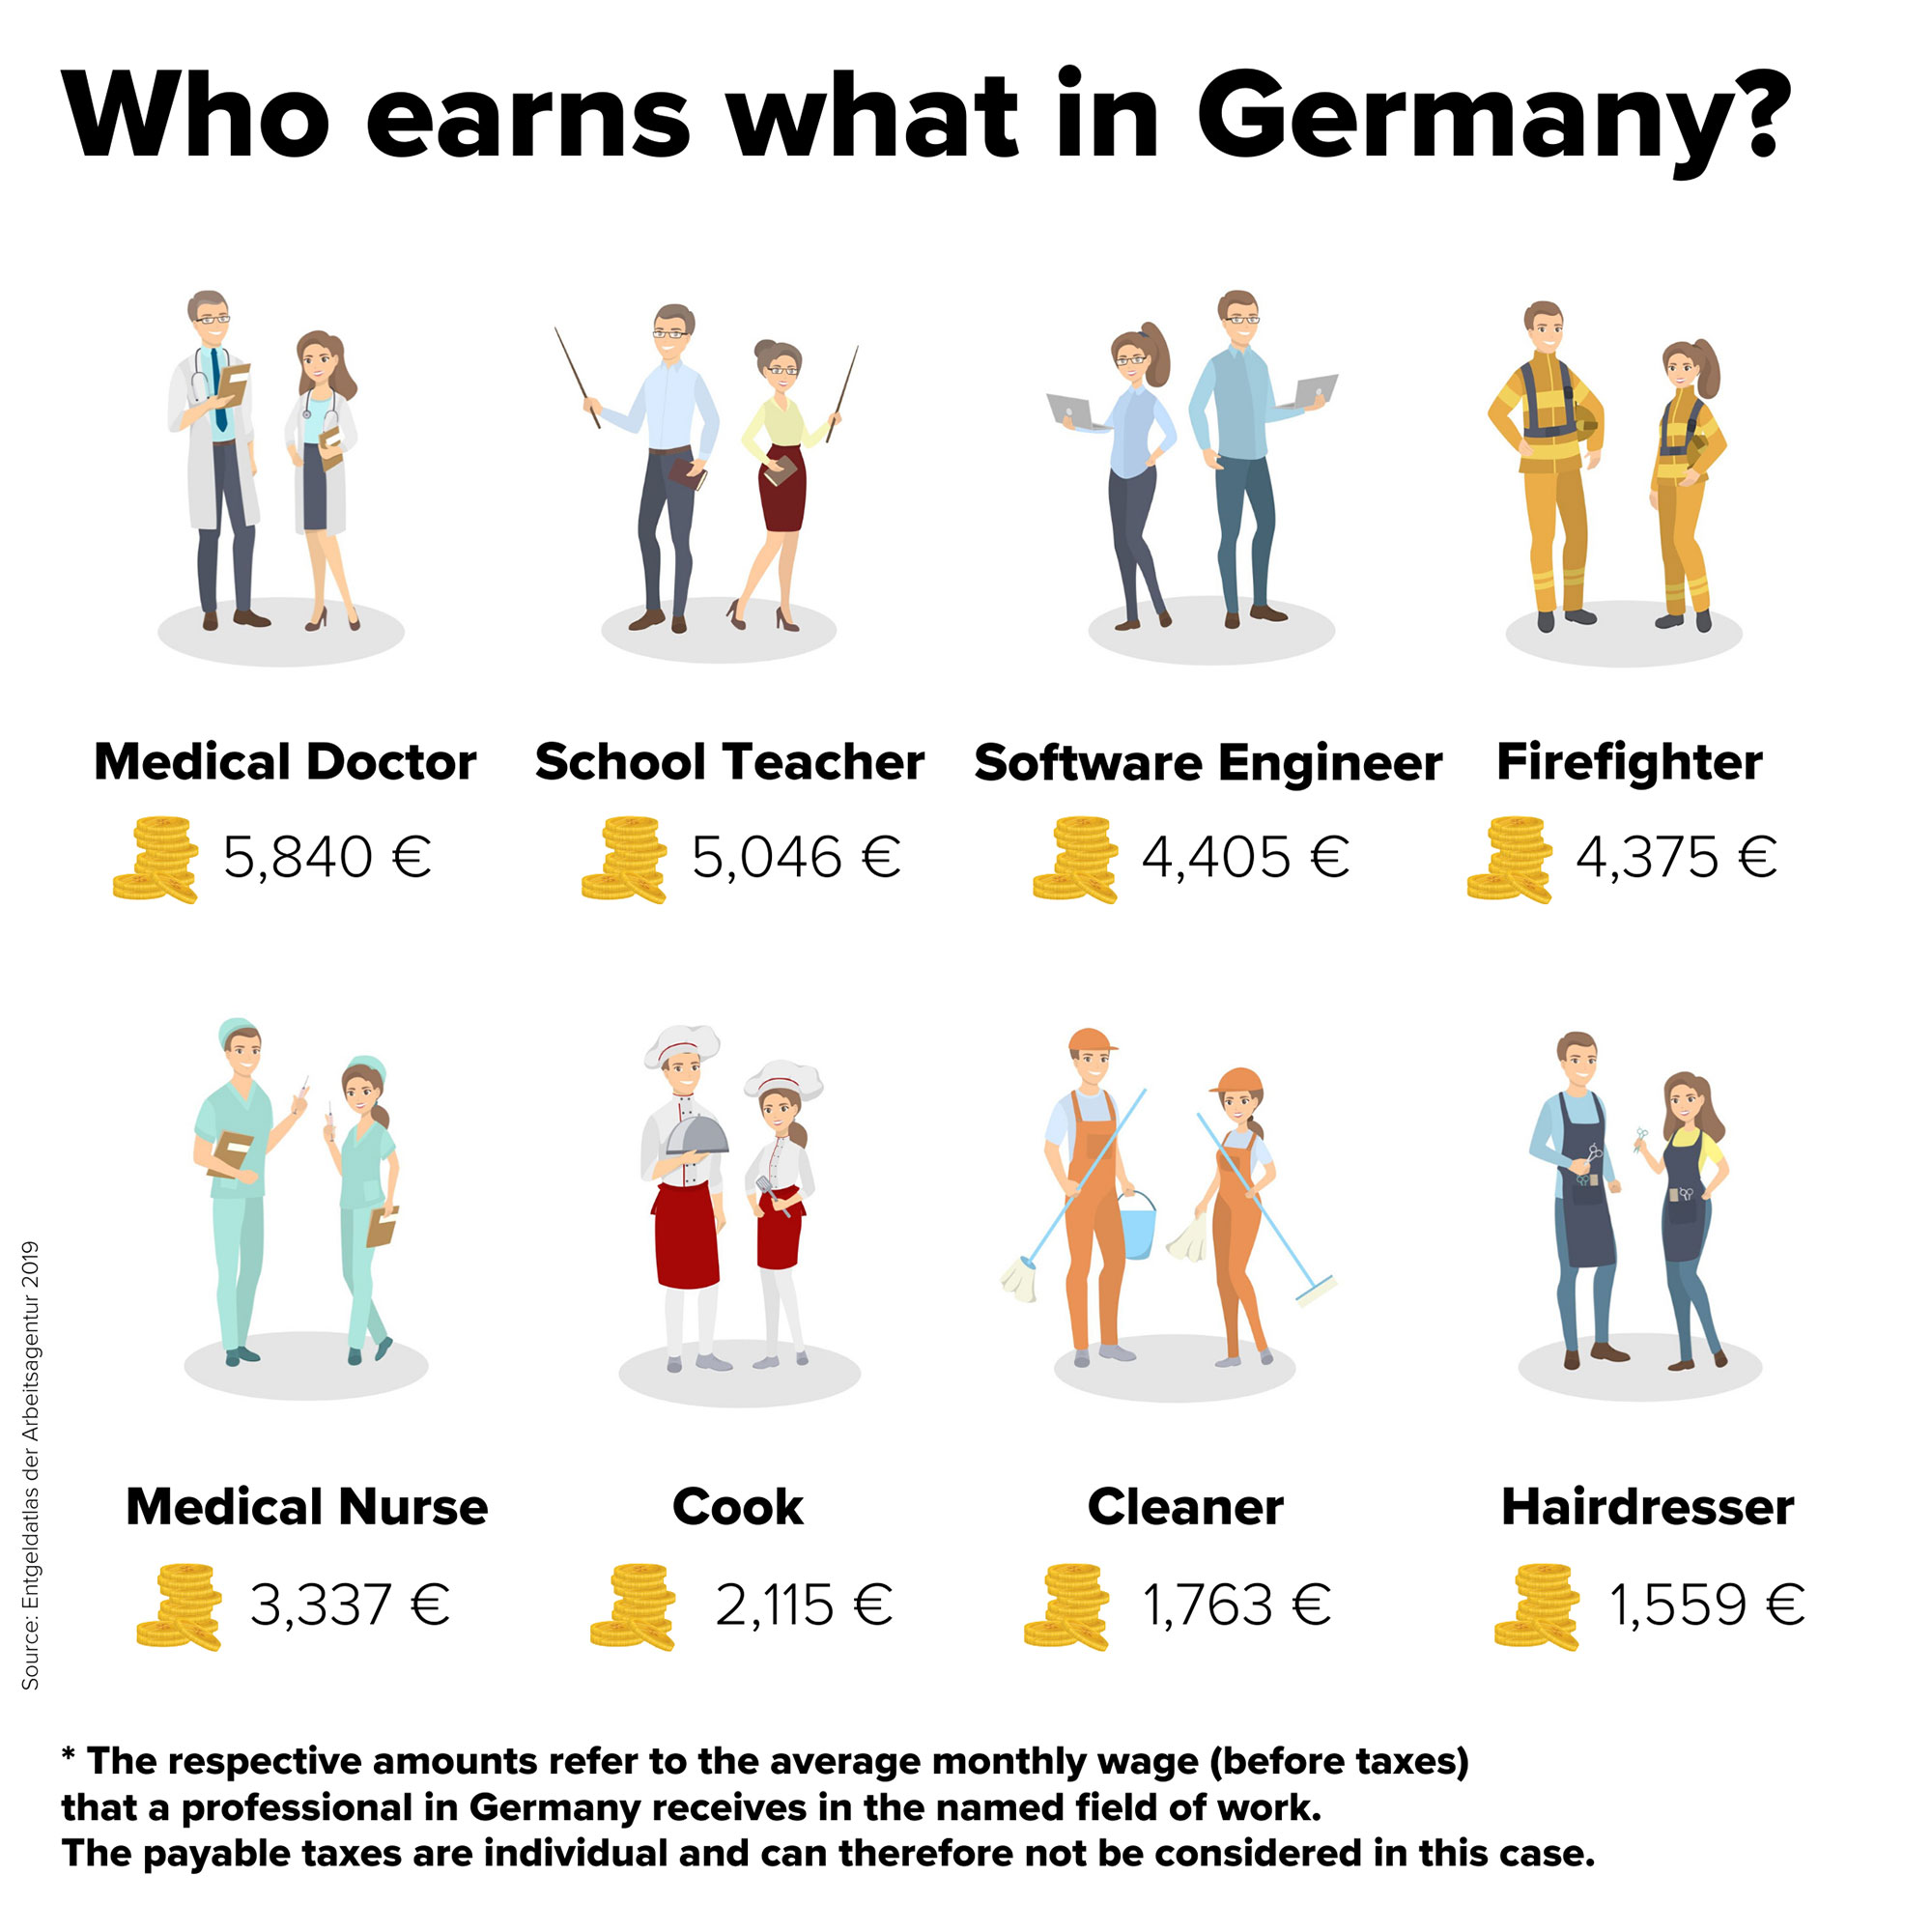 Who earns what in Germany?